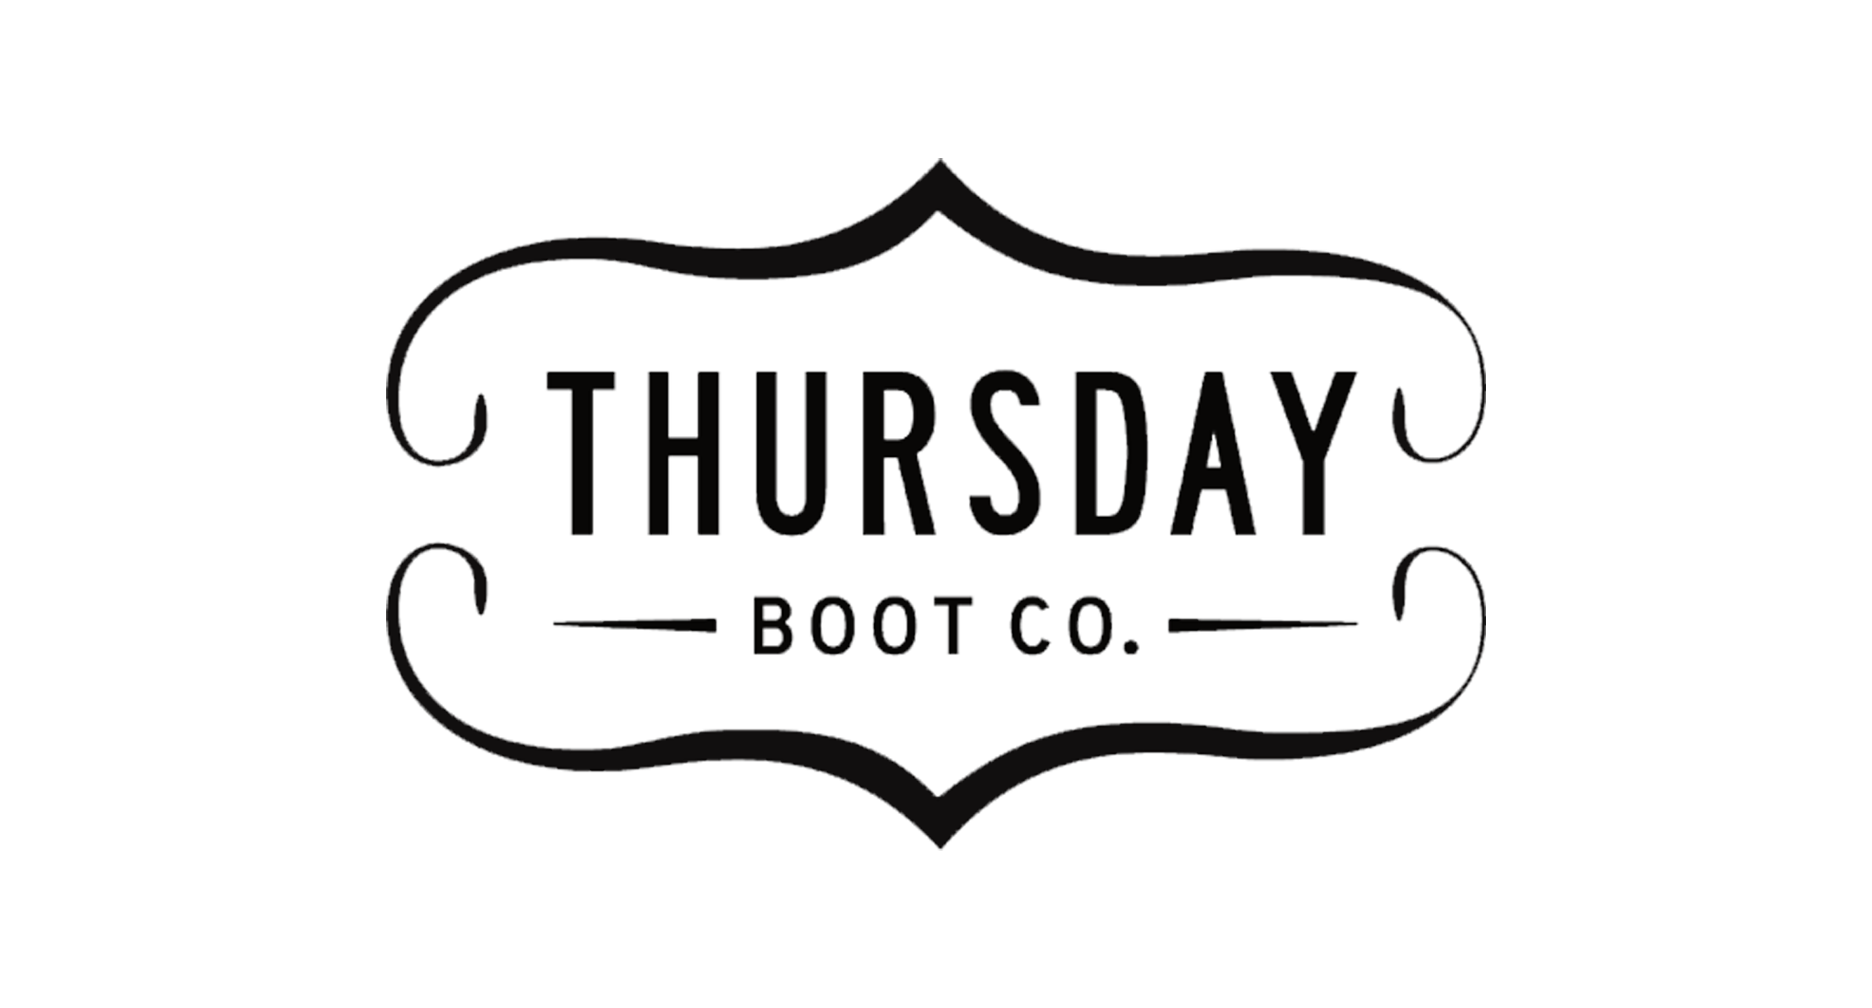 Thursday Logo.png